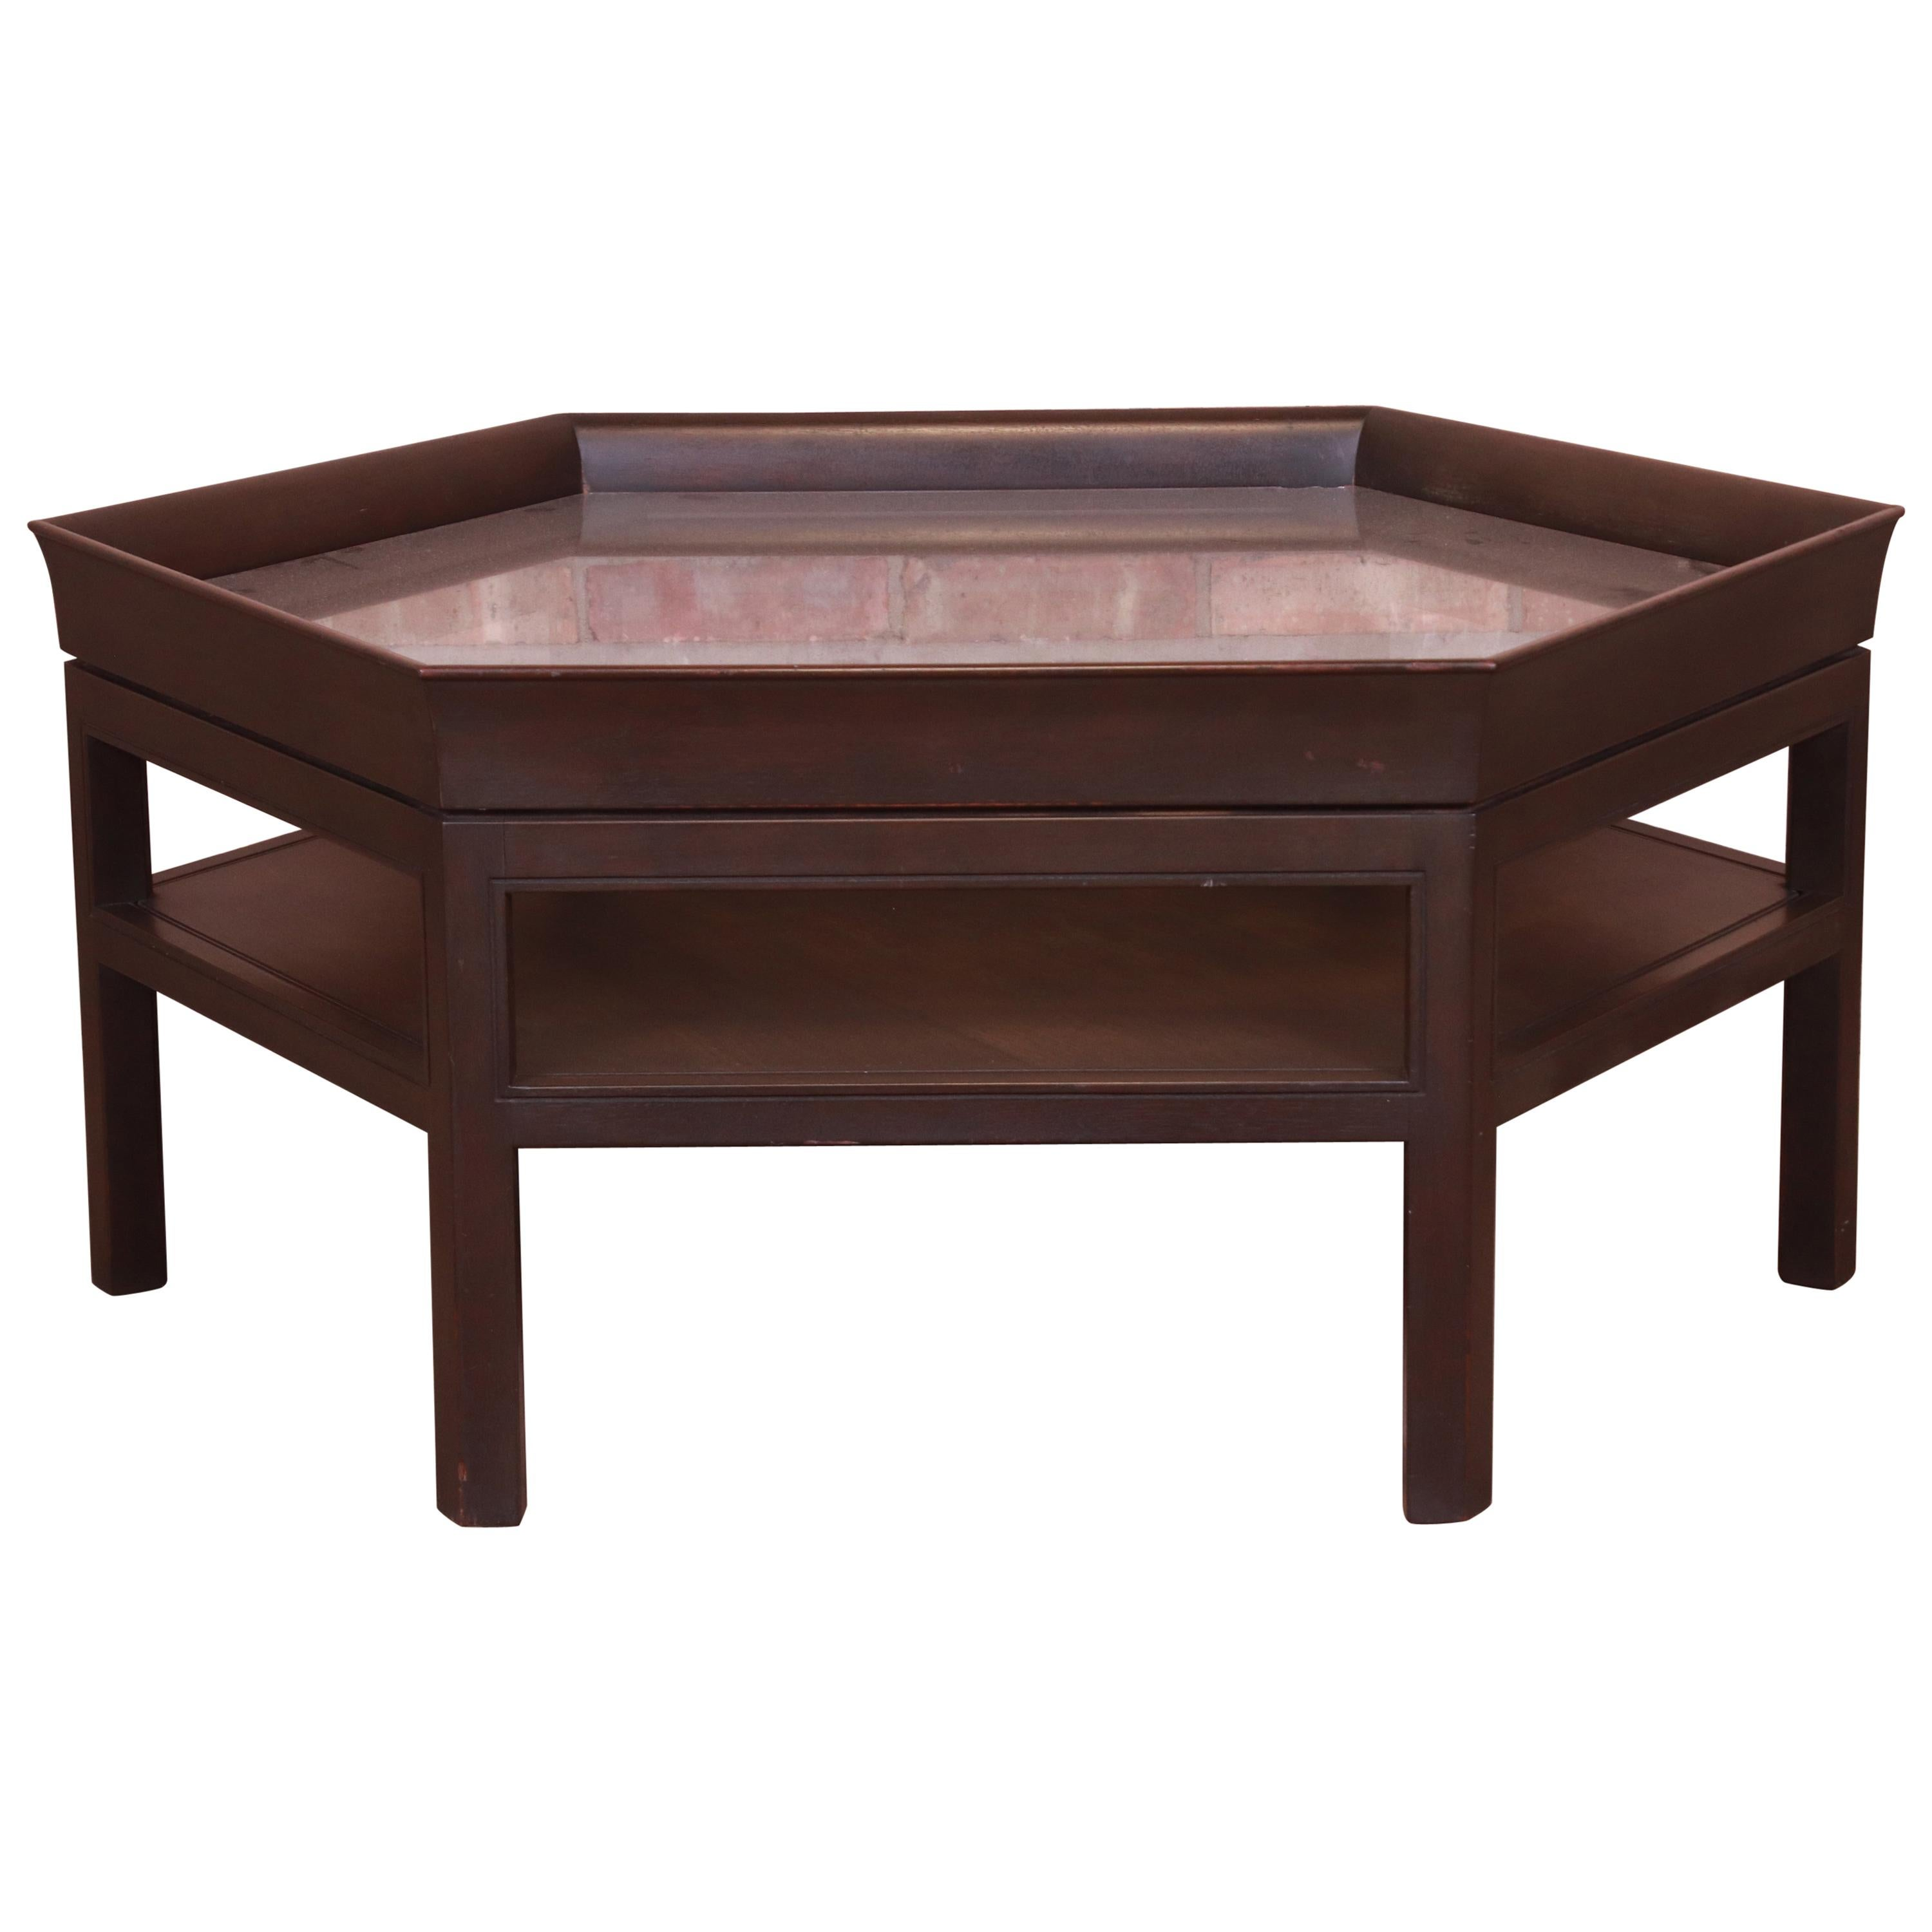 Baker Furniture Modern Hexagonal Two-Tier Mahogany Cocktail Table